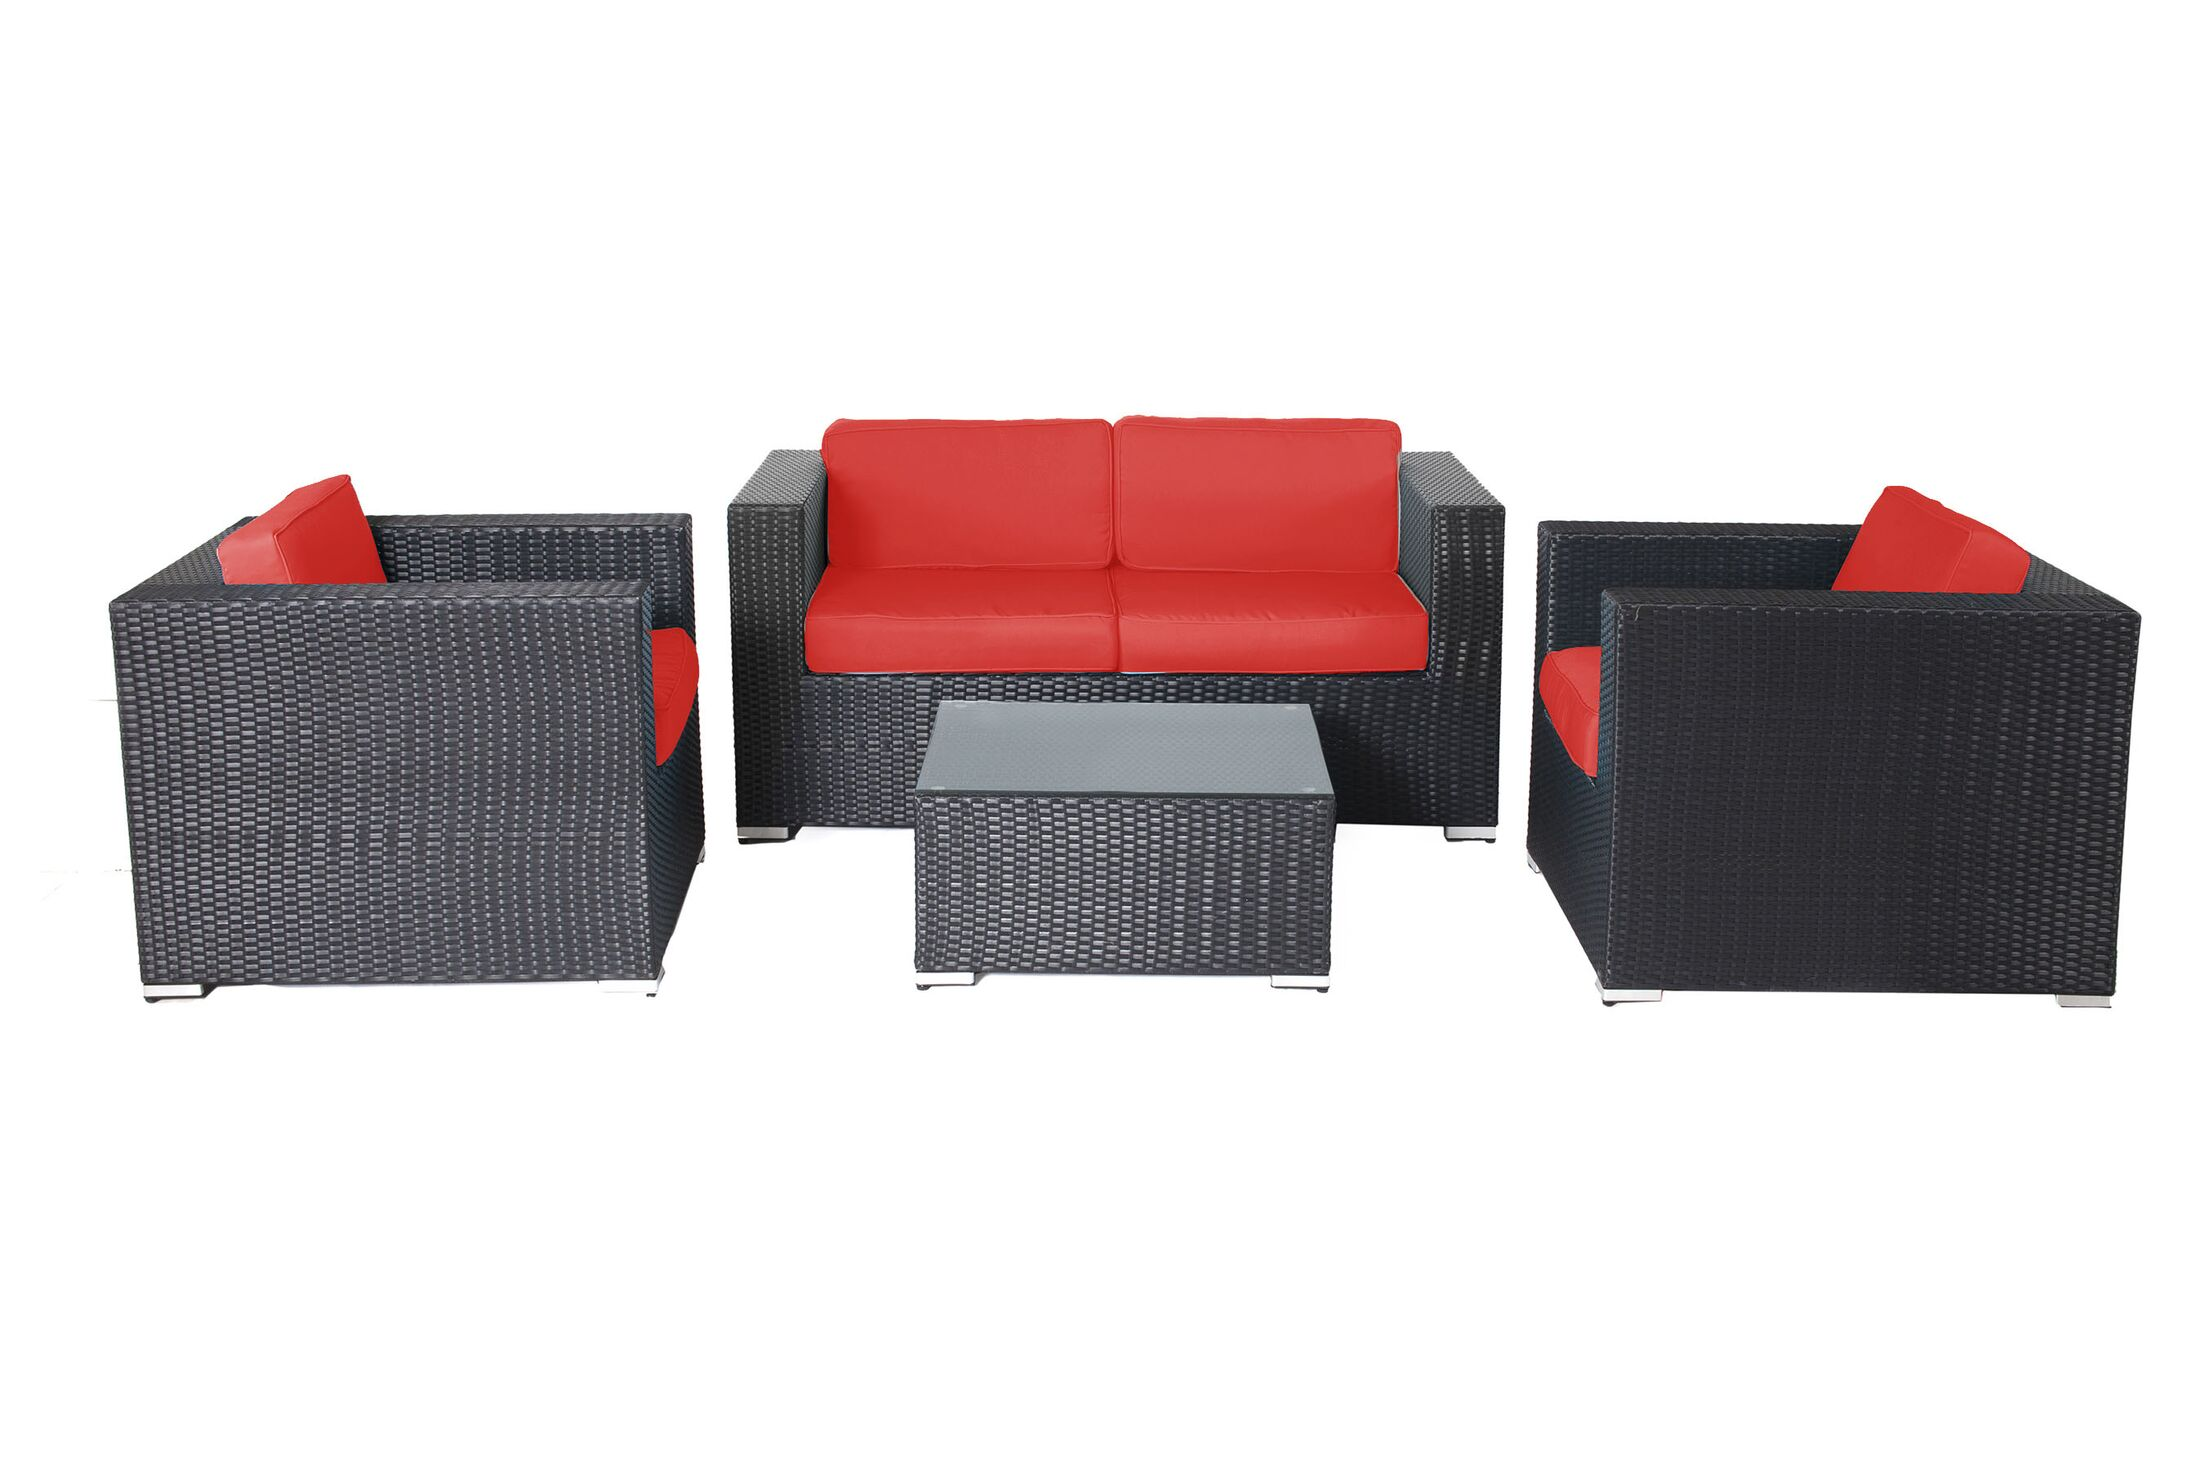 Hibner 4 Piece Rattan Sofa Set with Cushions Fabric: Red